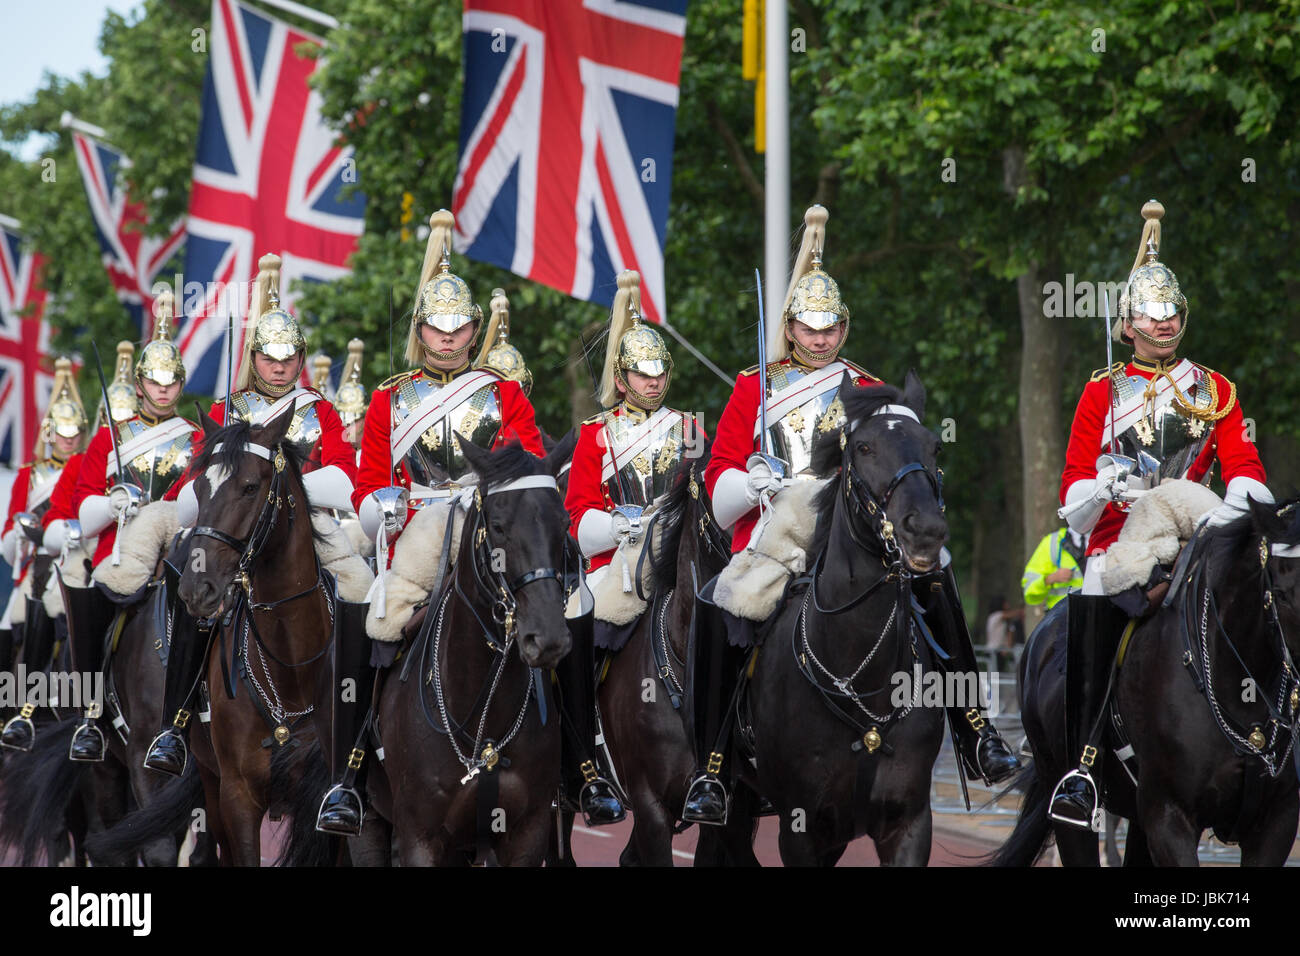 Household cavalry parade along The Mall, London - Stock Image